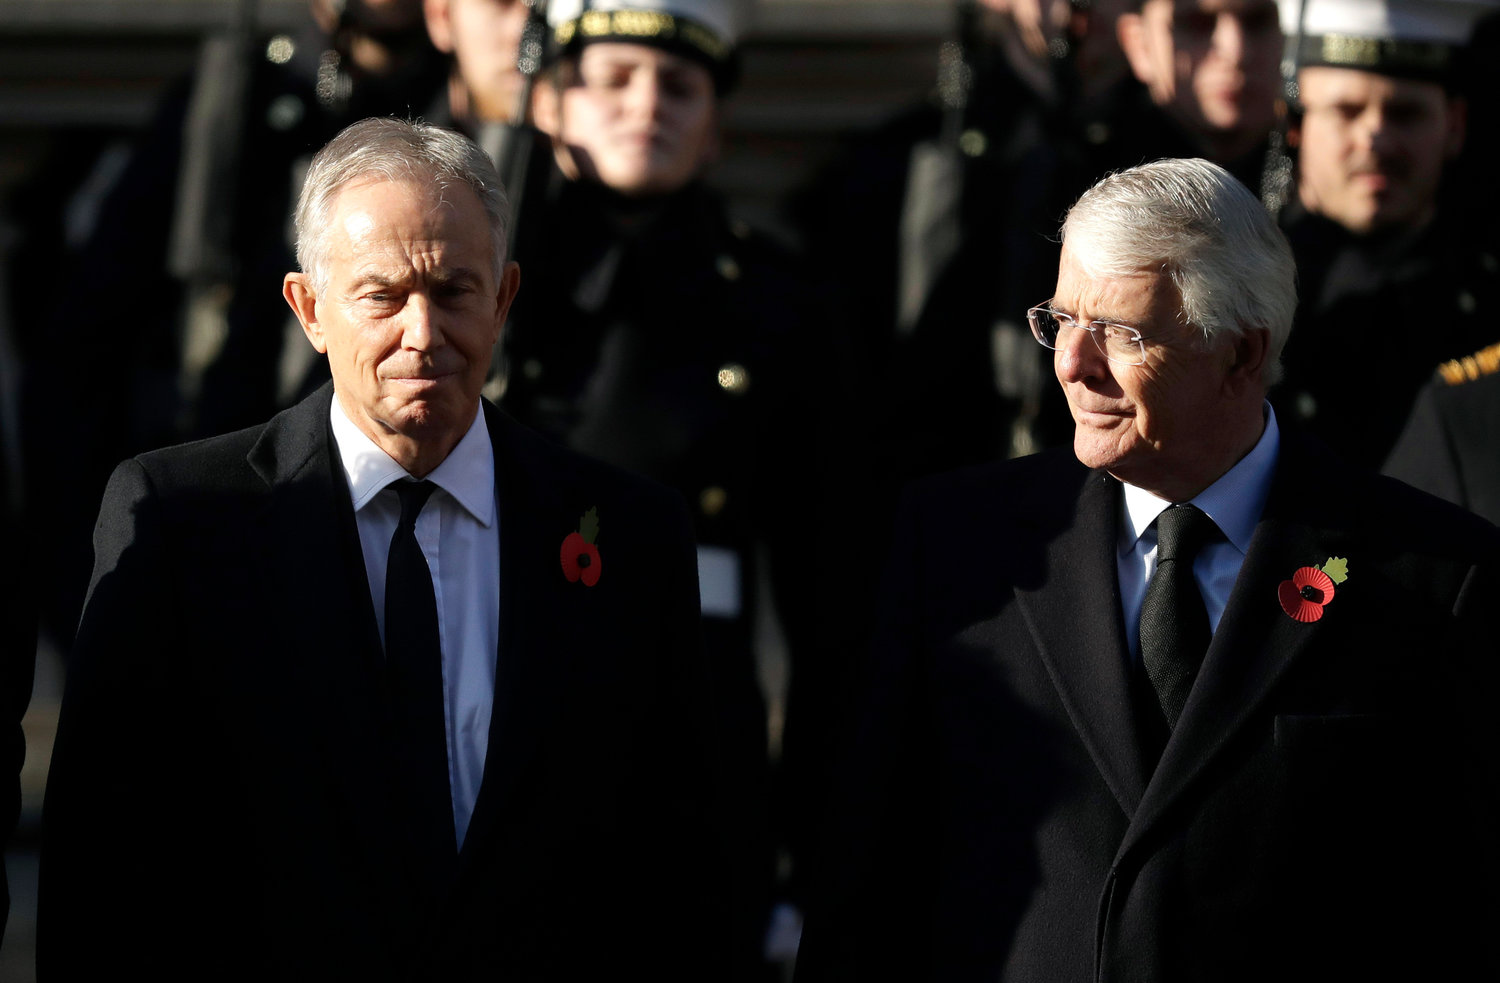 British Prime Ministers, Gordon Brown, Tony Blair, and John Major, from left, attend the Remembrance Sunday ceremony at the Cenotaph in Whitehall in London, Sunday, Nov. 10, 2019. Remembrance Sunday is held each year to commemorate the service men and women who fought in past military conflicts. (AP Photo/Matt Dunham)